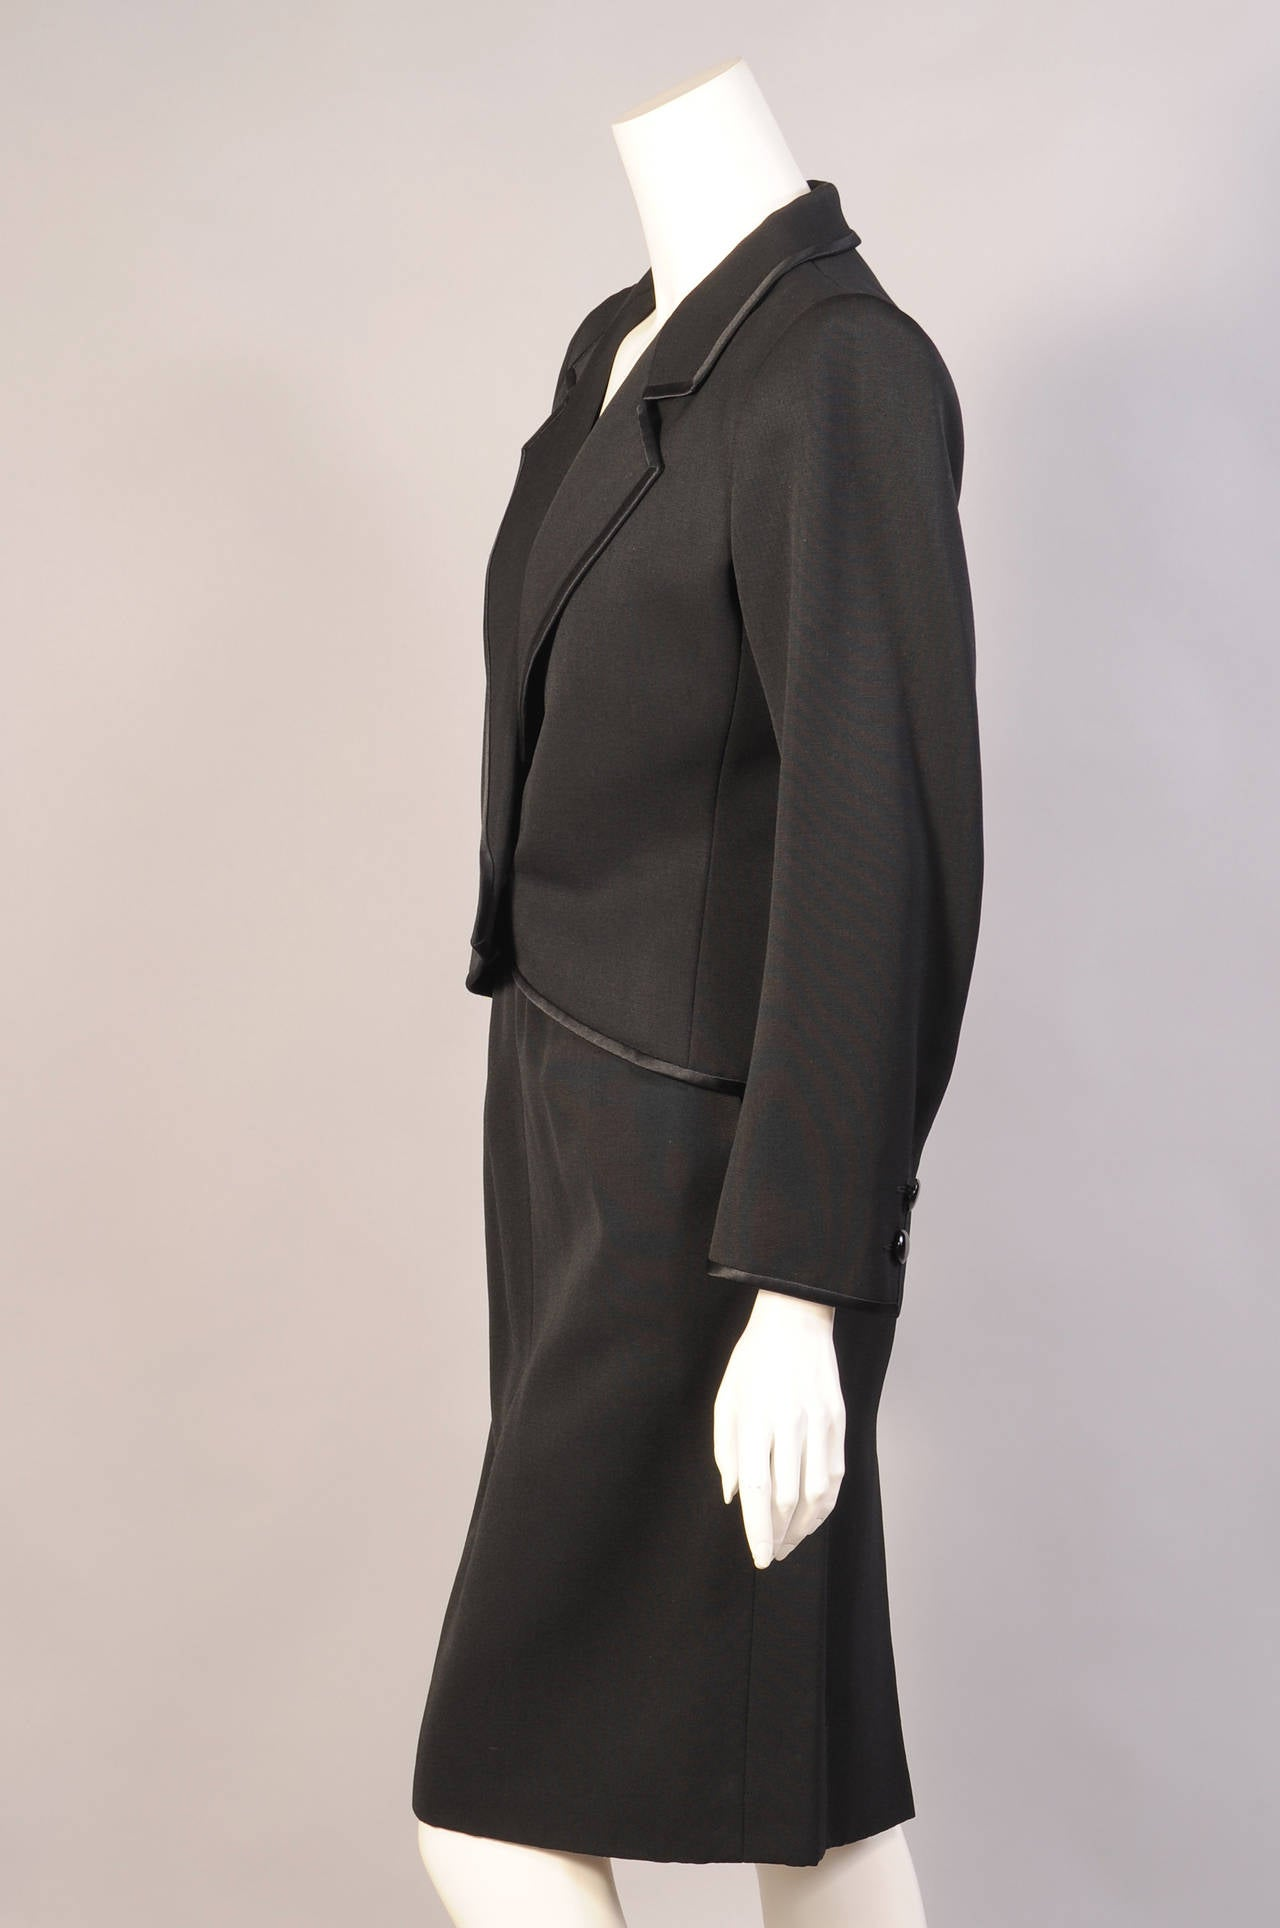 Yves Saint Laurent Numbered Haute Couture Le Smoking Suit In Excellent Condition For Sale In New Hope, PA